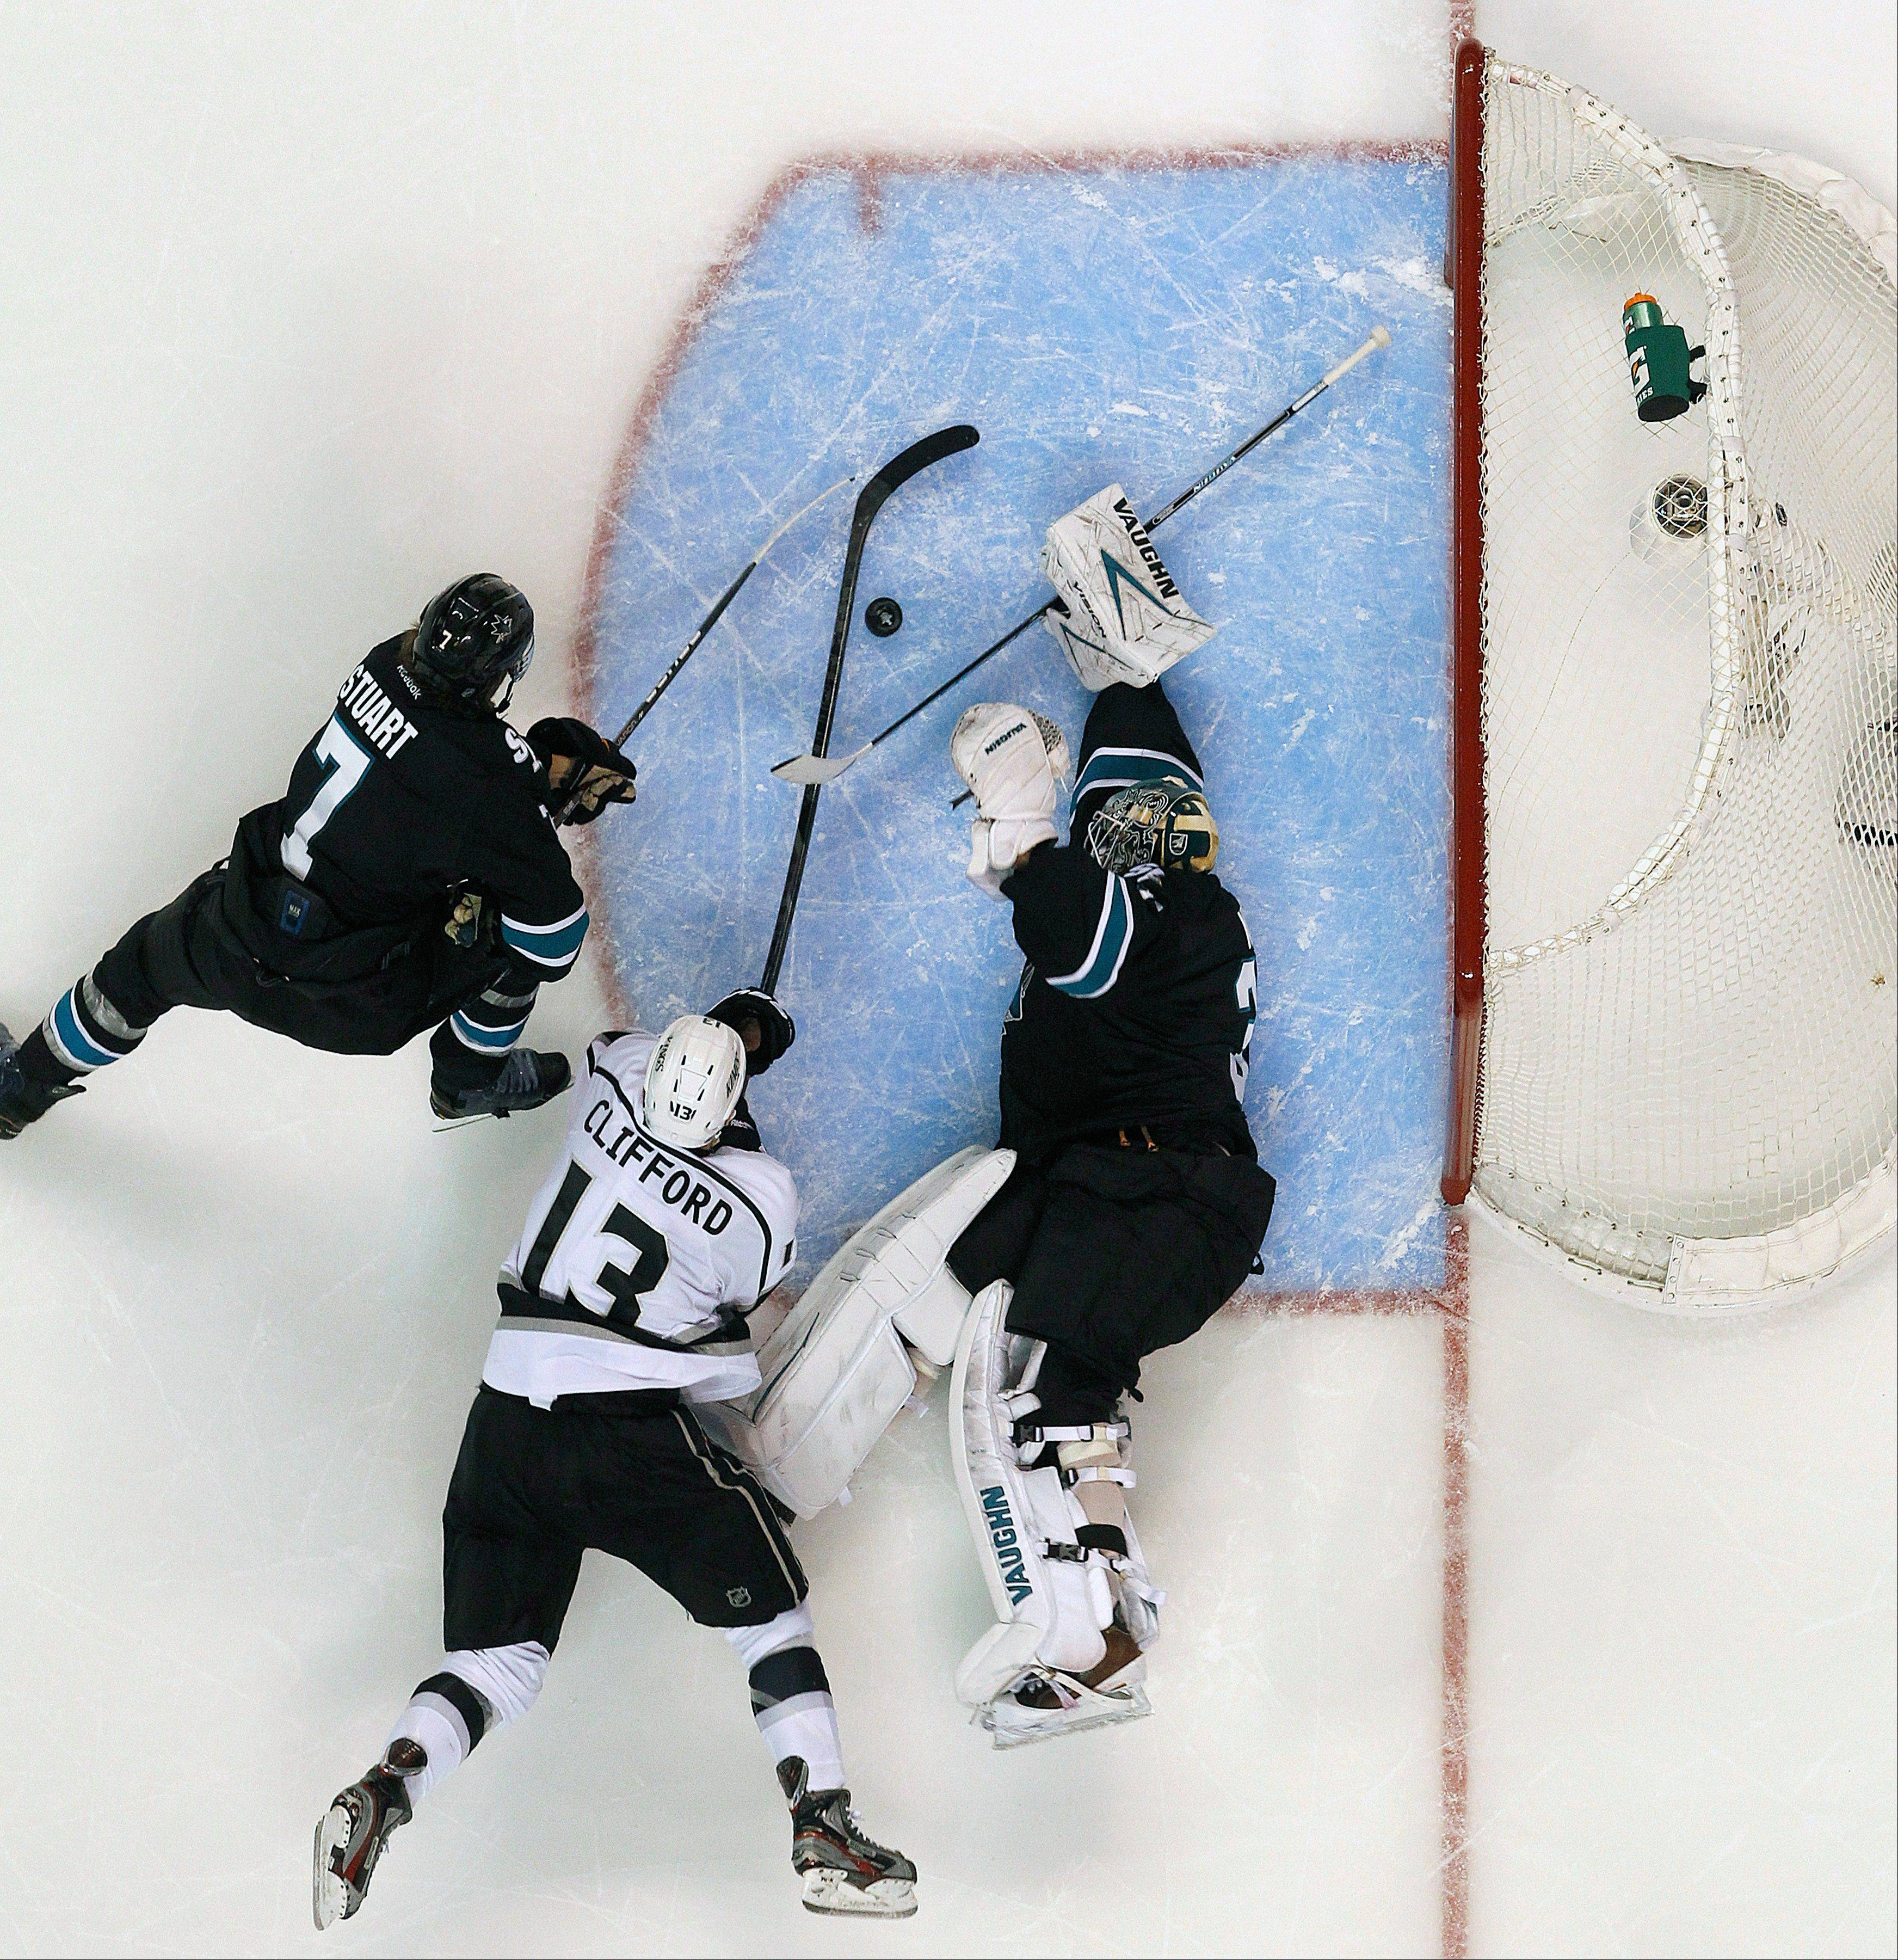 San Jose Sharks goalie Antti Niemi blocks a goal attempt by Los Angeles Kings left wing Kyle Clifford as Sharks defenseman Brad Stuart defends during the second period in Game 6 of their second-round NHL hockey Stanley Cup playoff series in San Jose, Calif., Sunday, May 26, 2013.